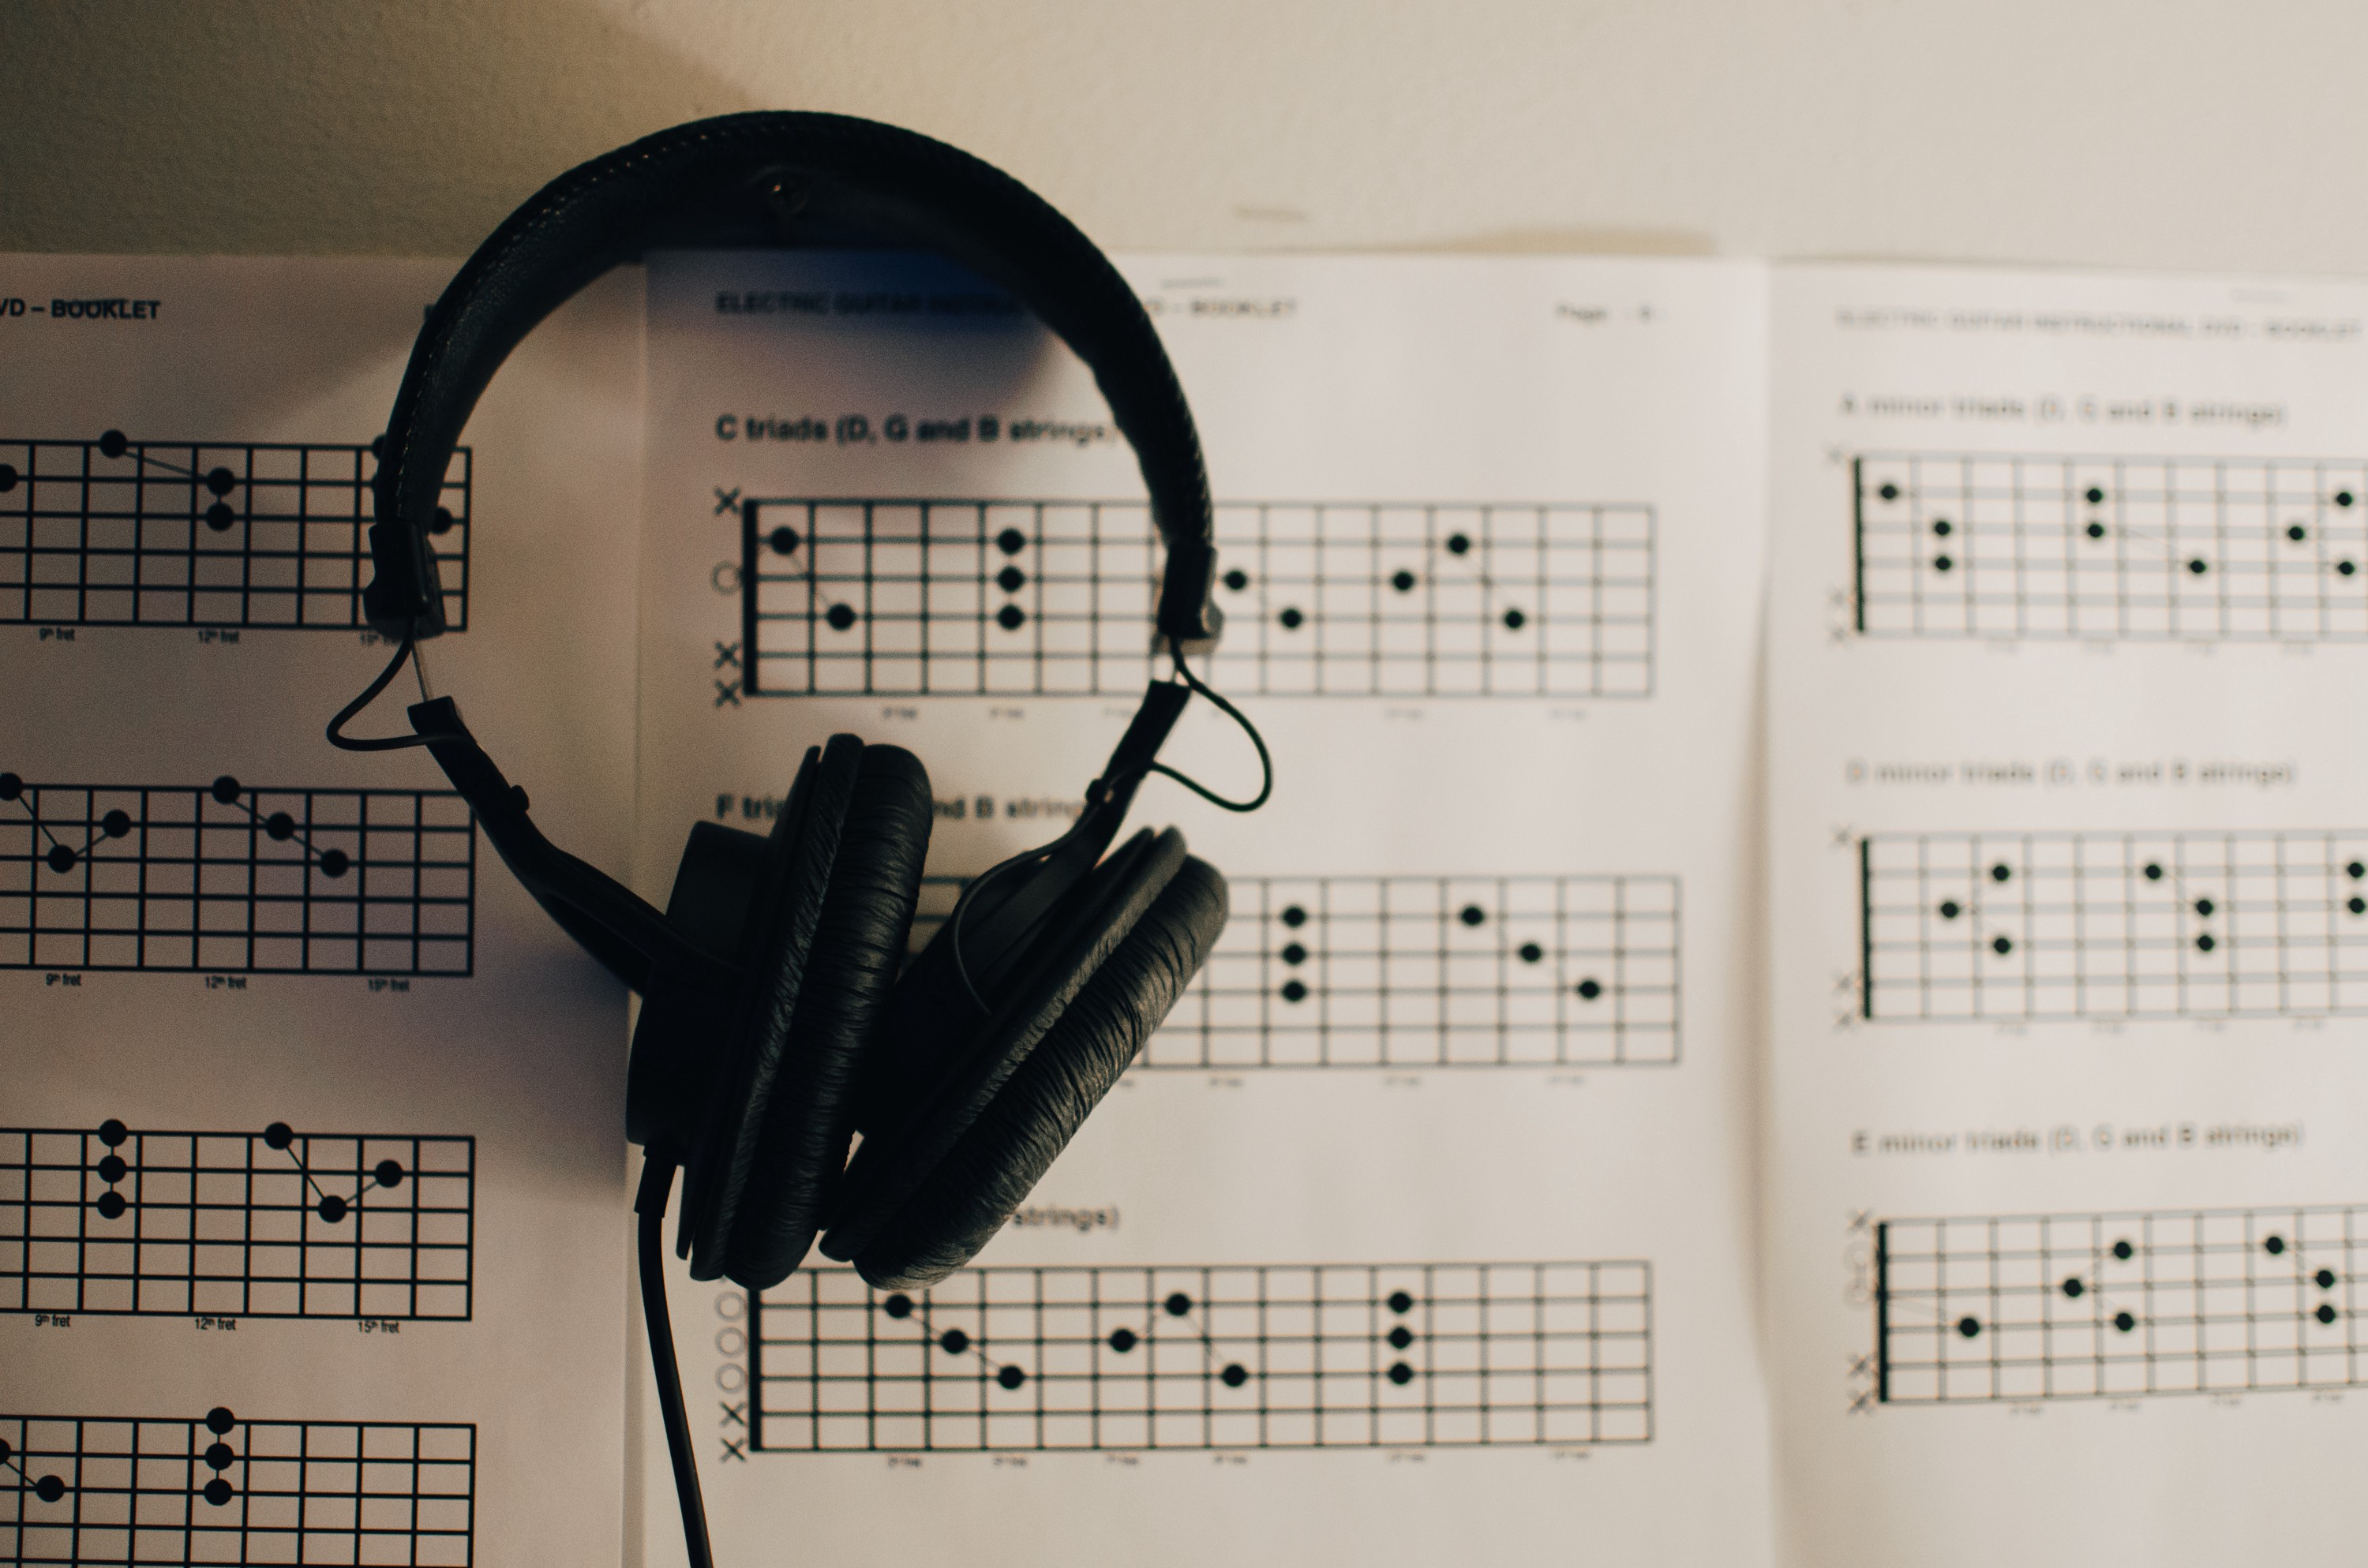 A pair of black headphones lies on top of an open book of musical notation.